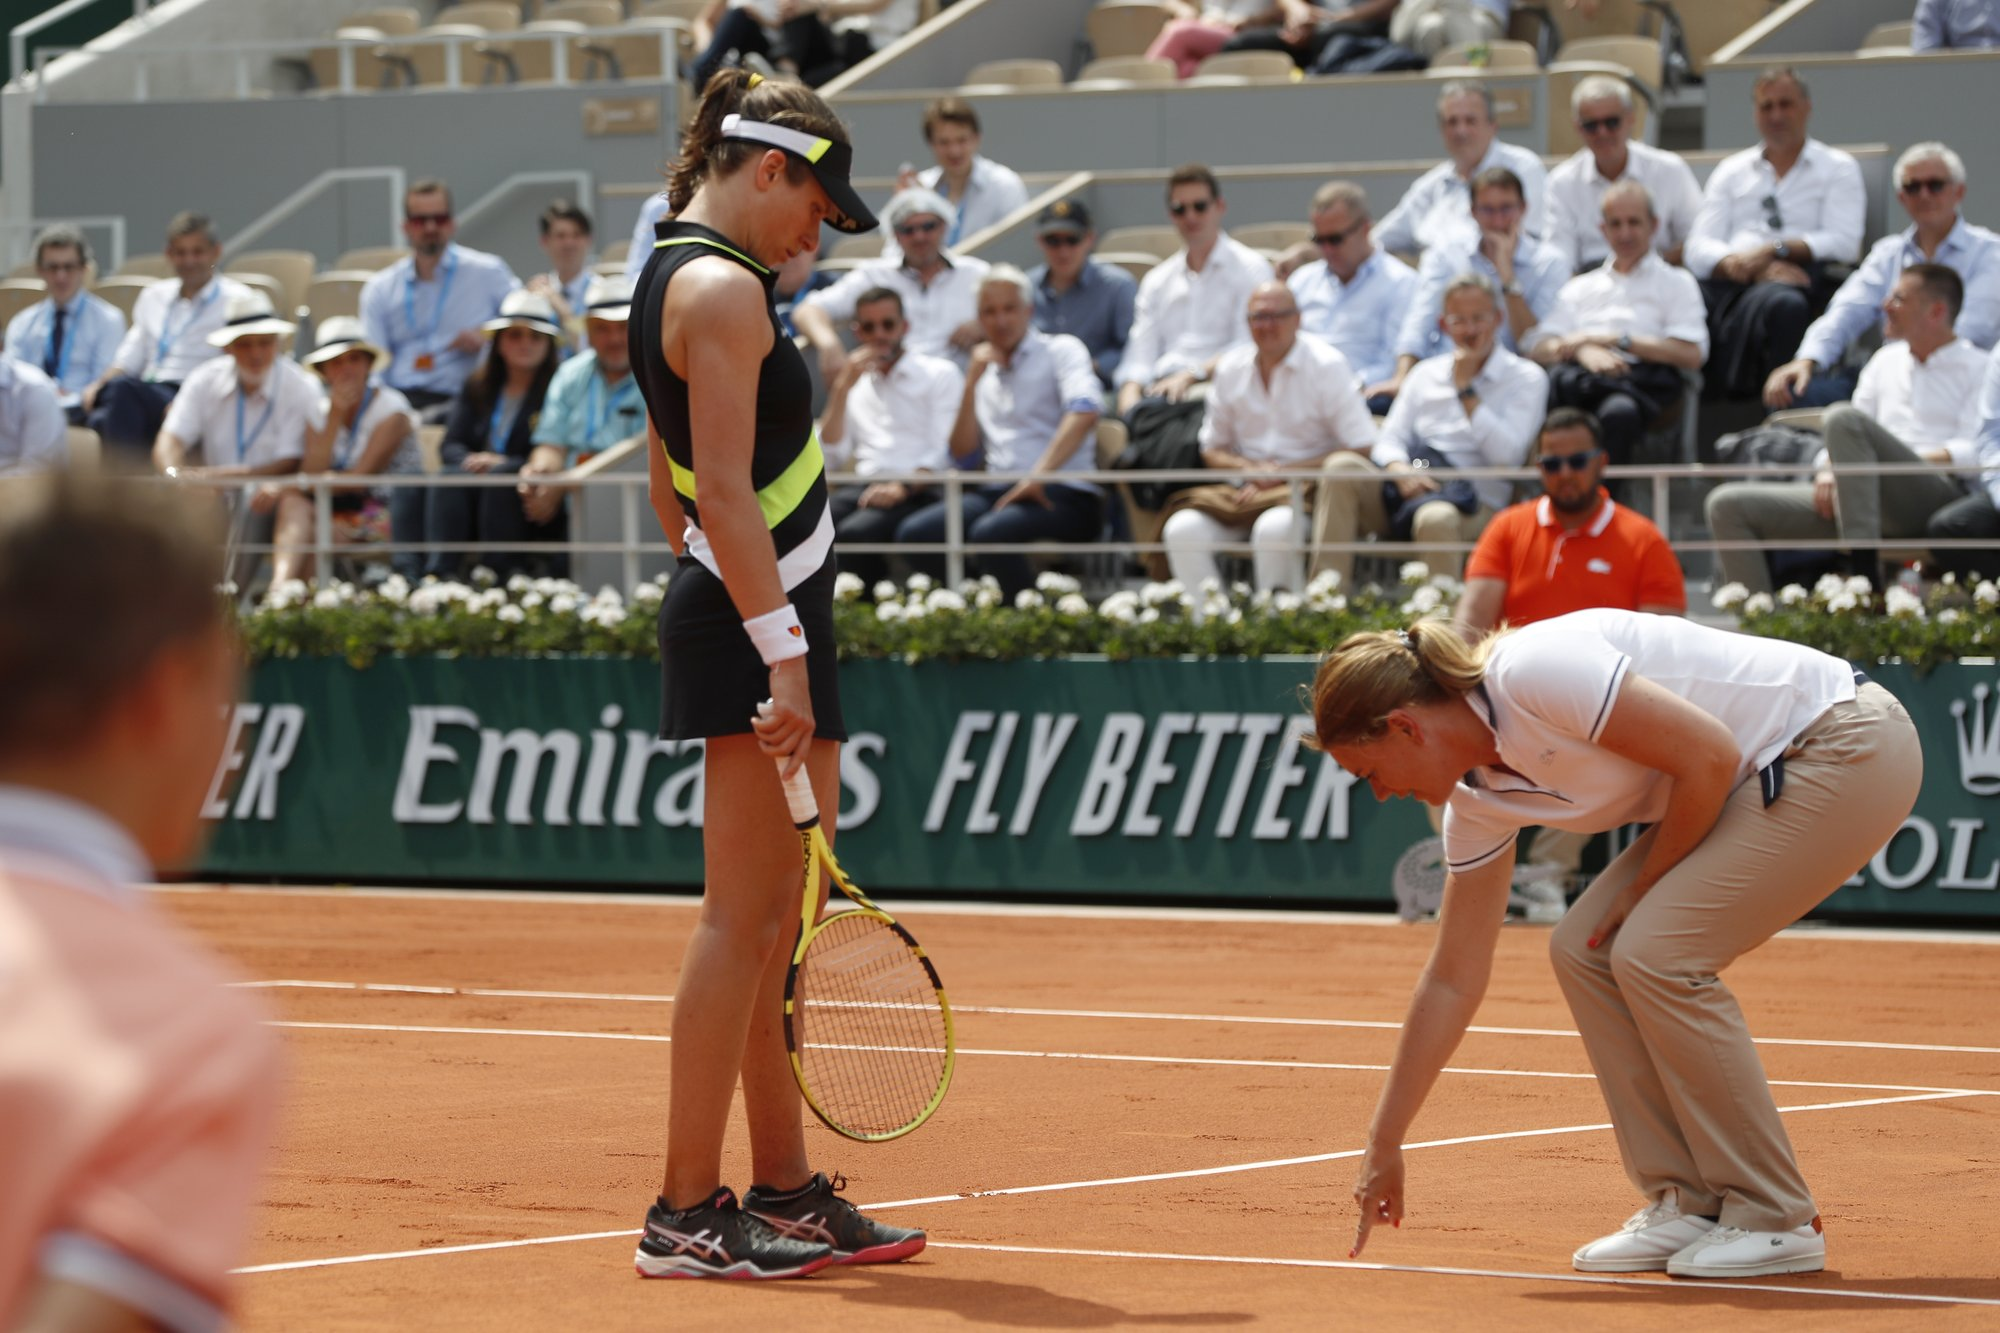 Choreography comes to clay: No replay review at French Open